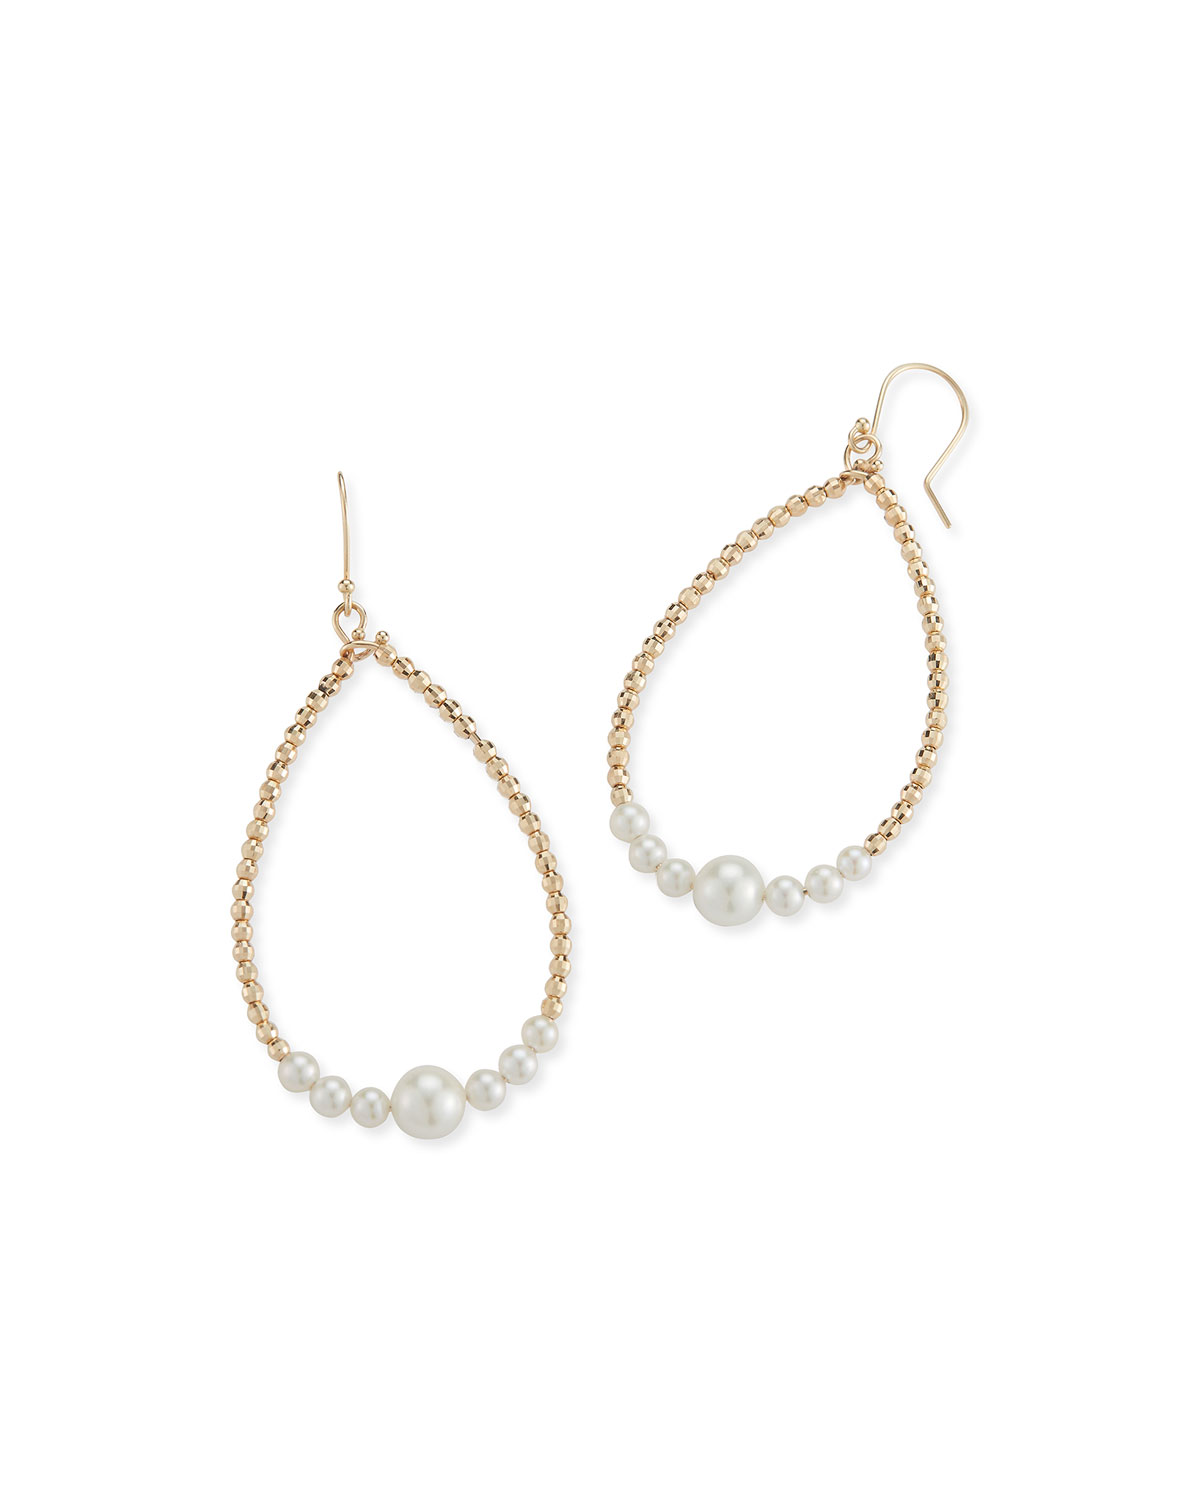 Mizuki Accessories 14K GOLD PEARL TEARDROP HOOP EARRINGS